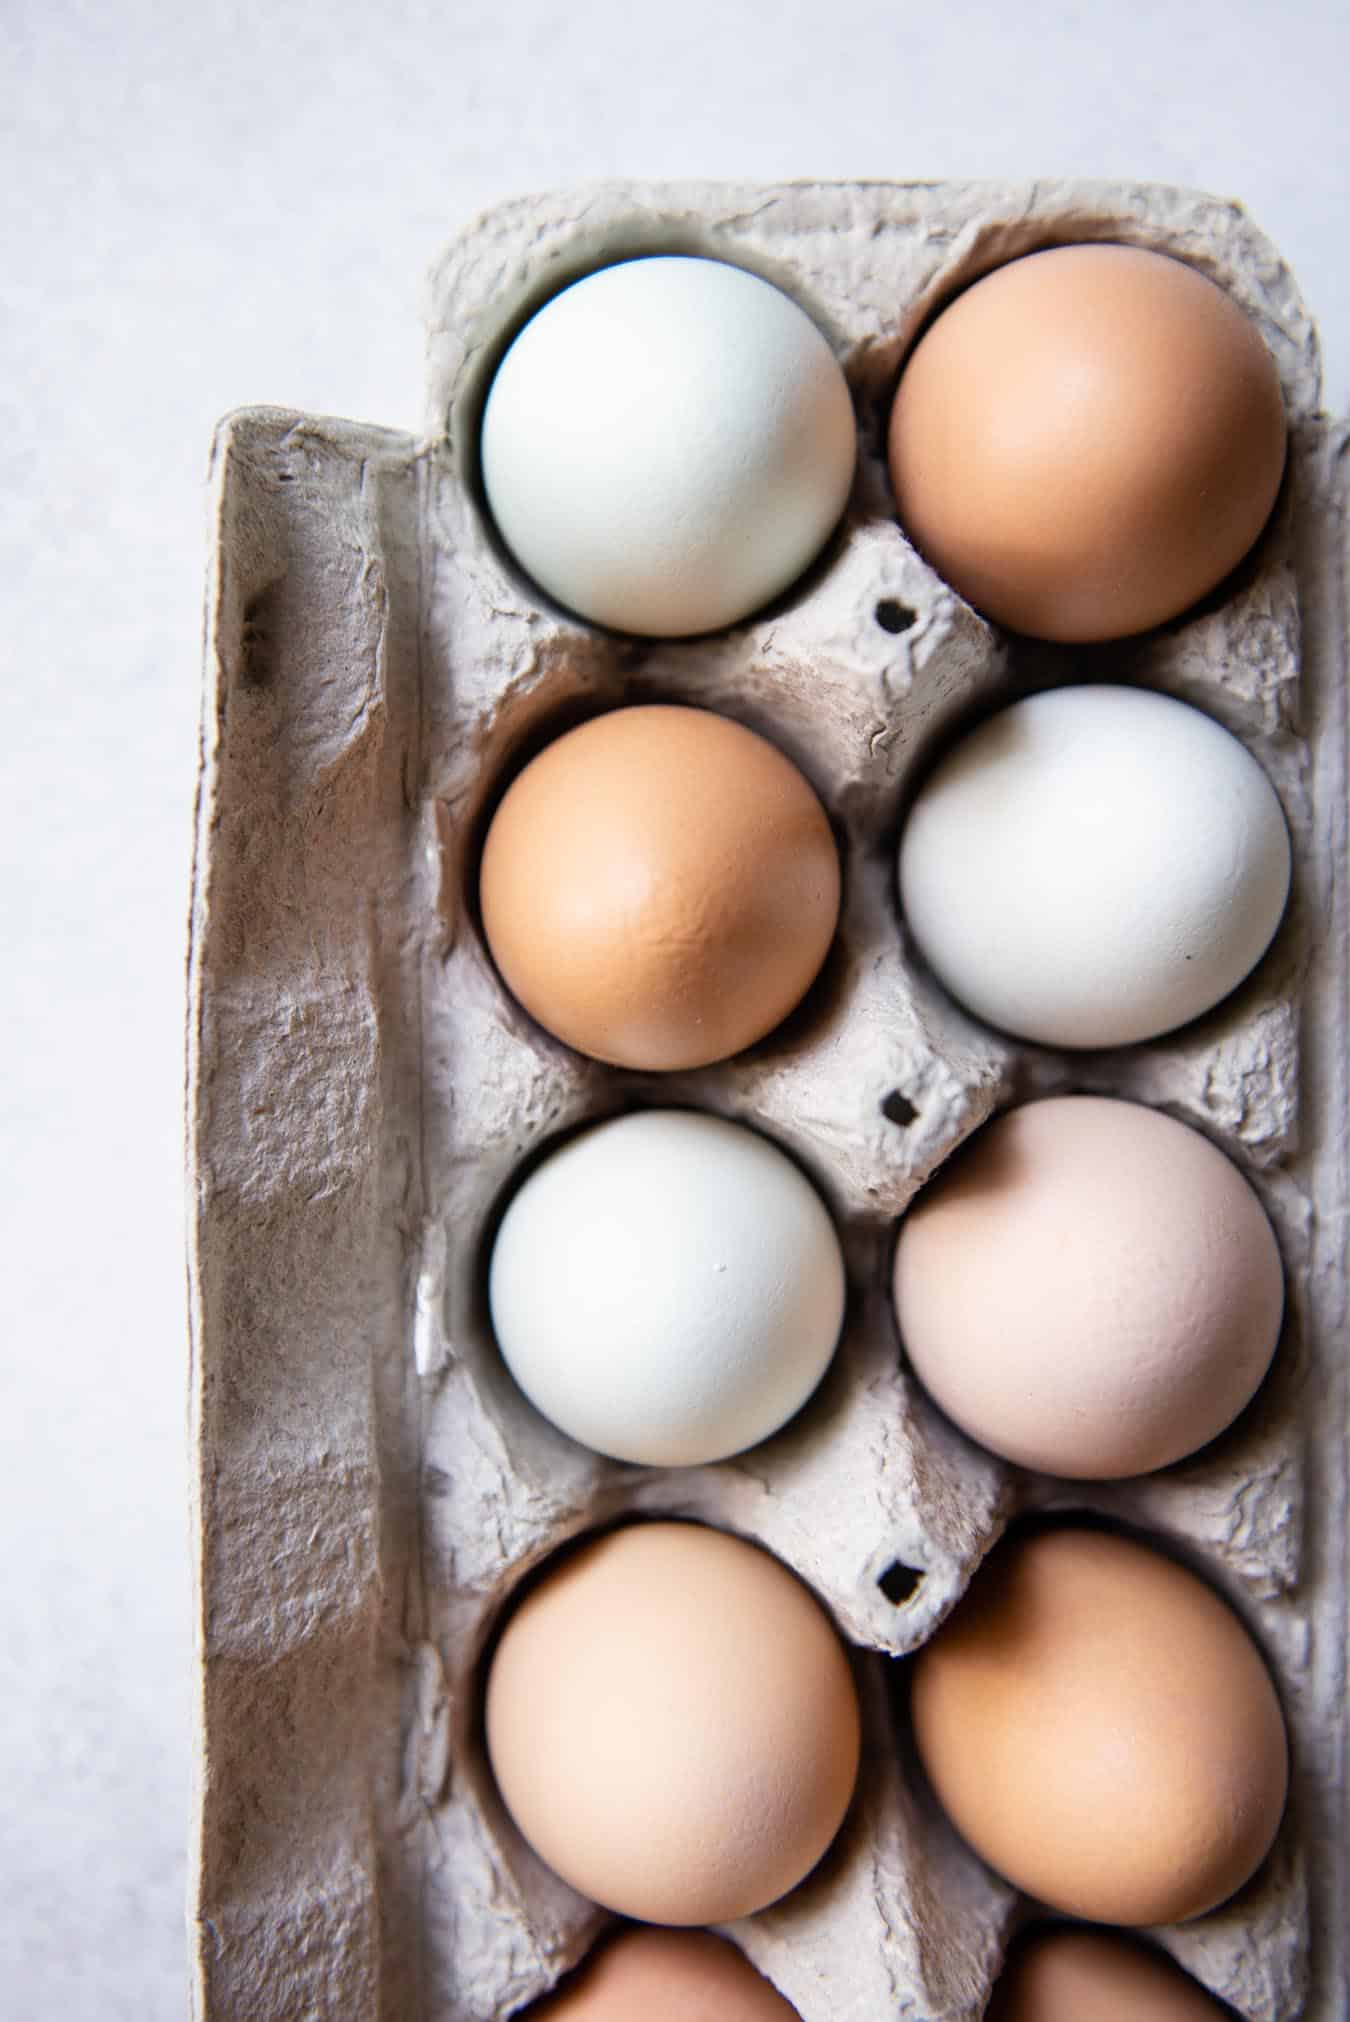 Sustainability in Egg Farming